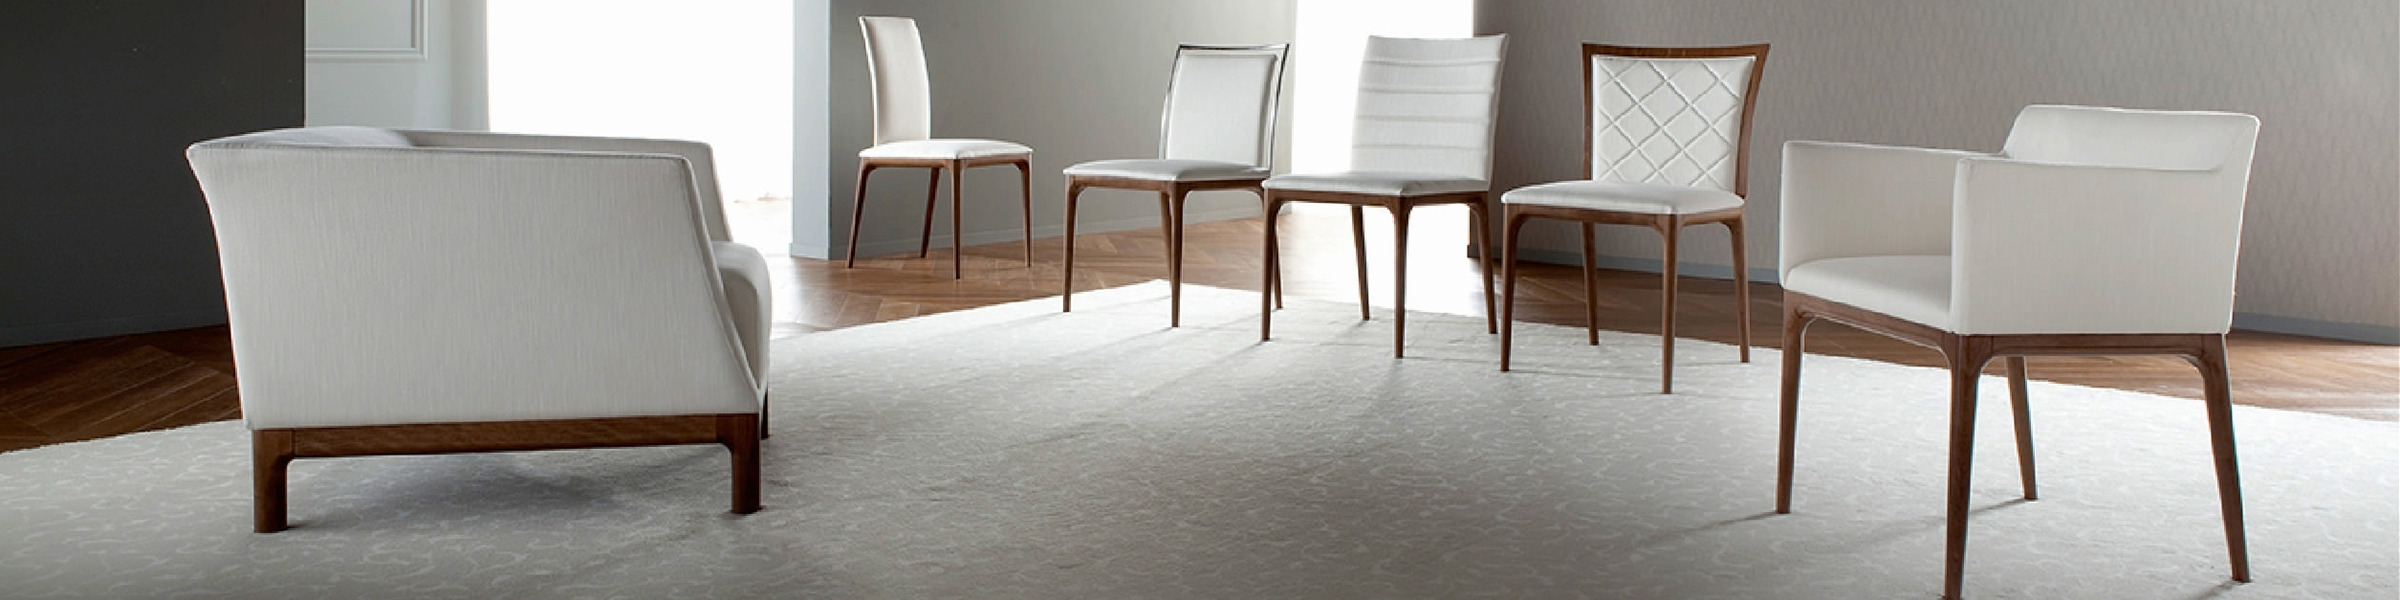 Cliffyoung Regarding Contemporary Dining Room Chairs (View 5 of 25)